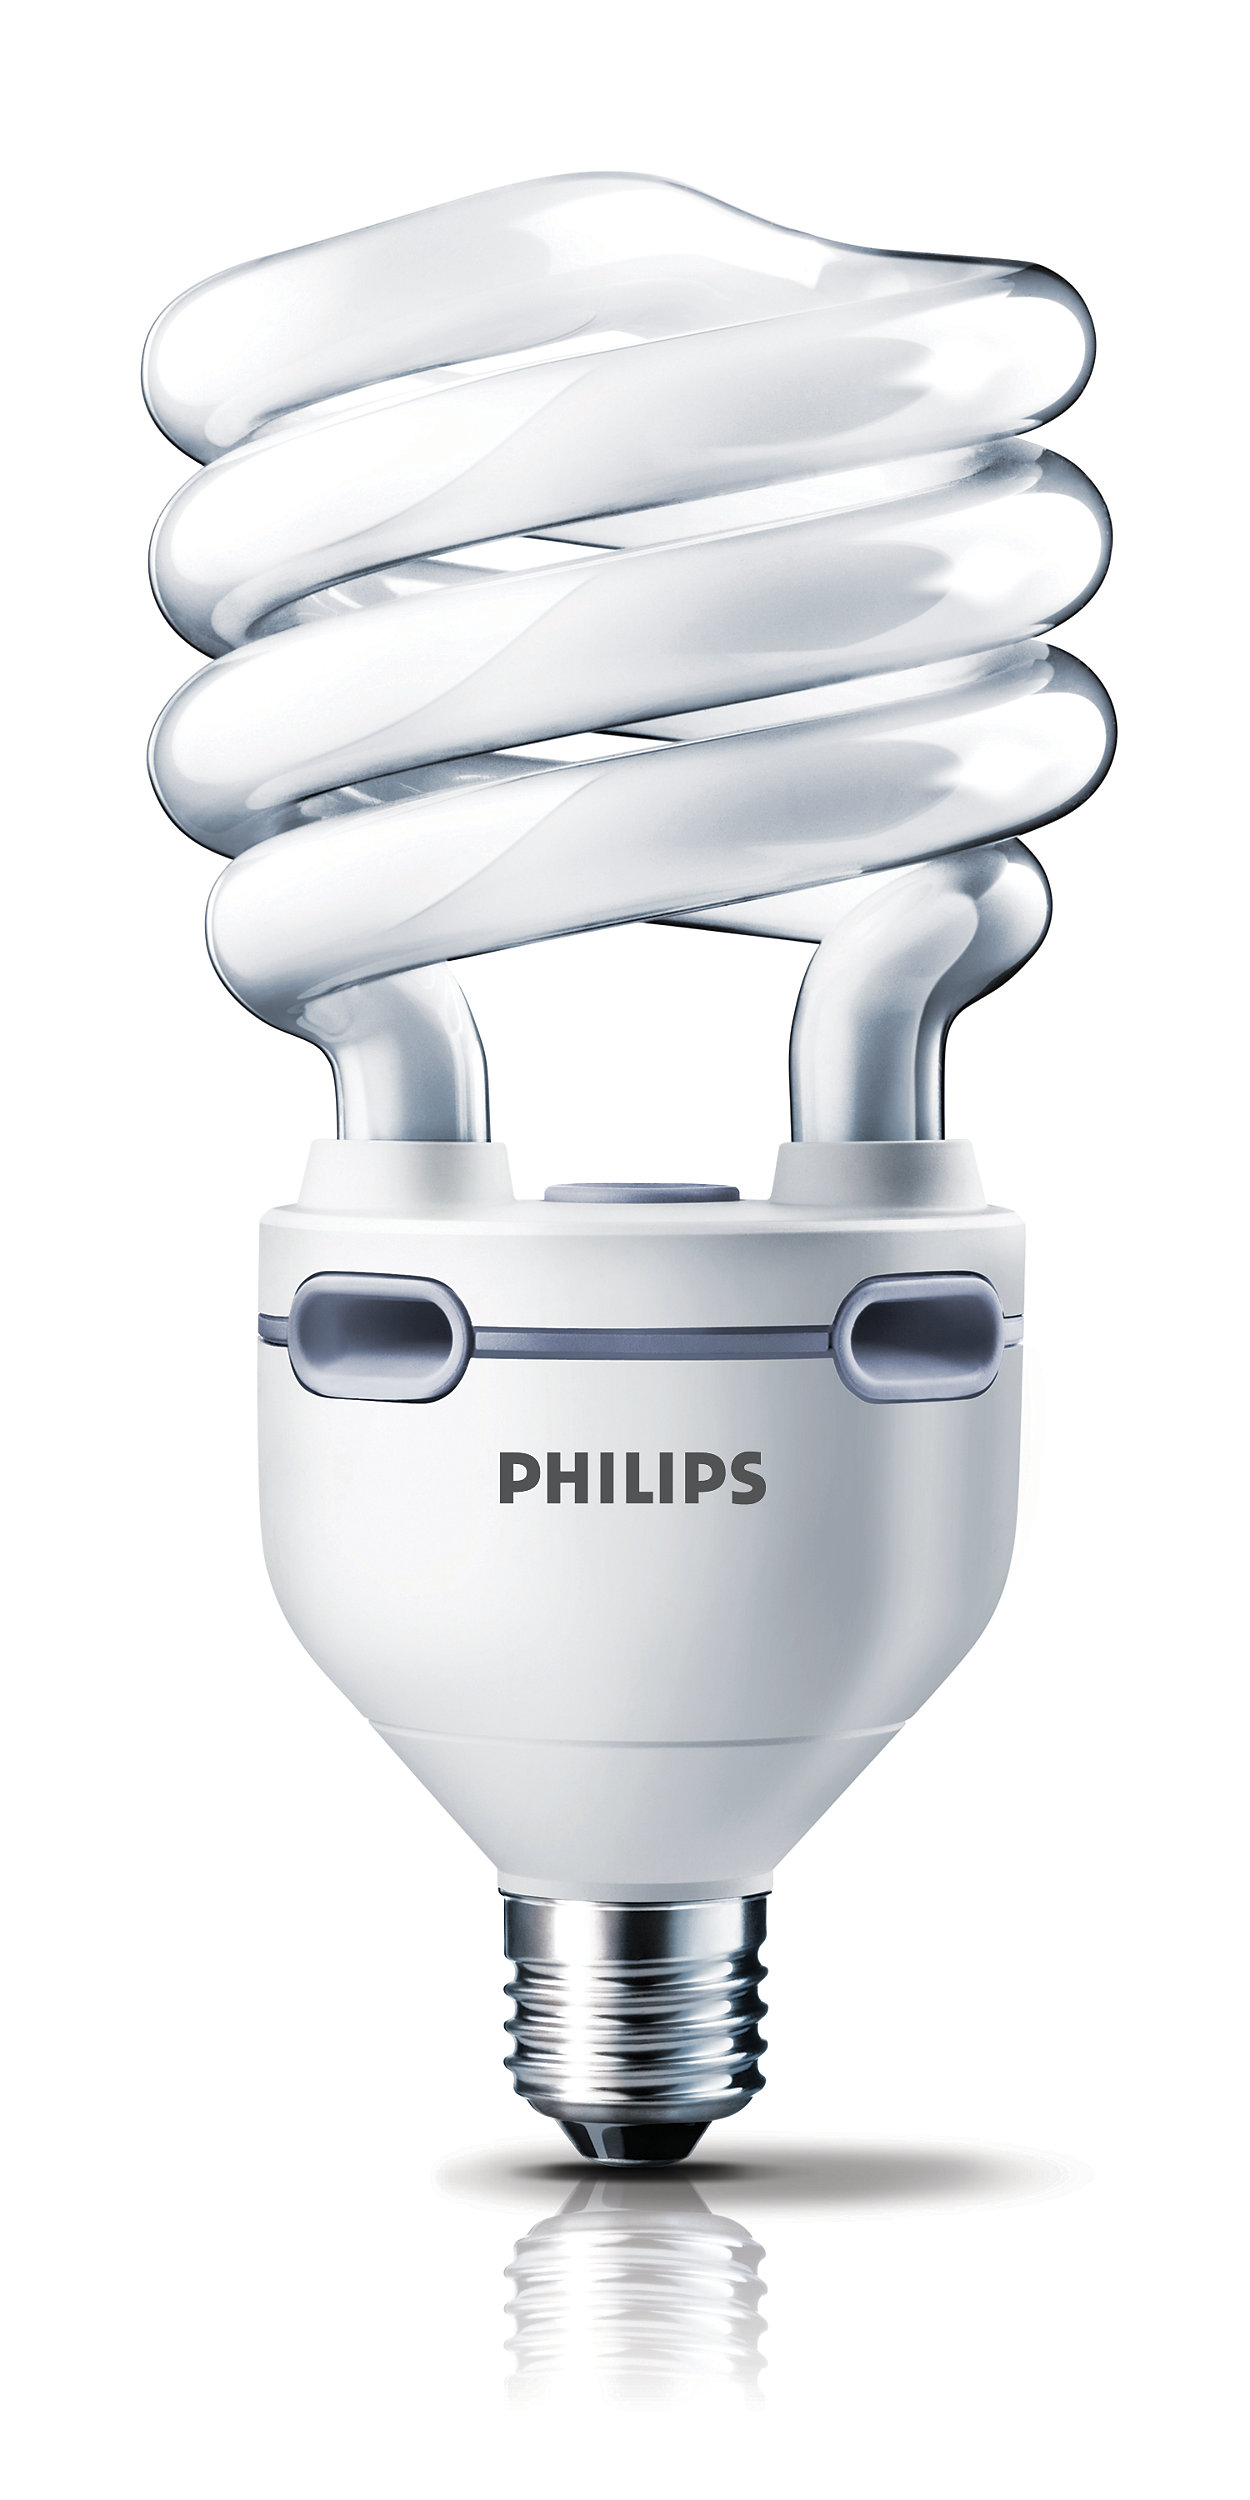 Combining superior high lumen, design & performance